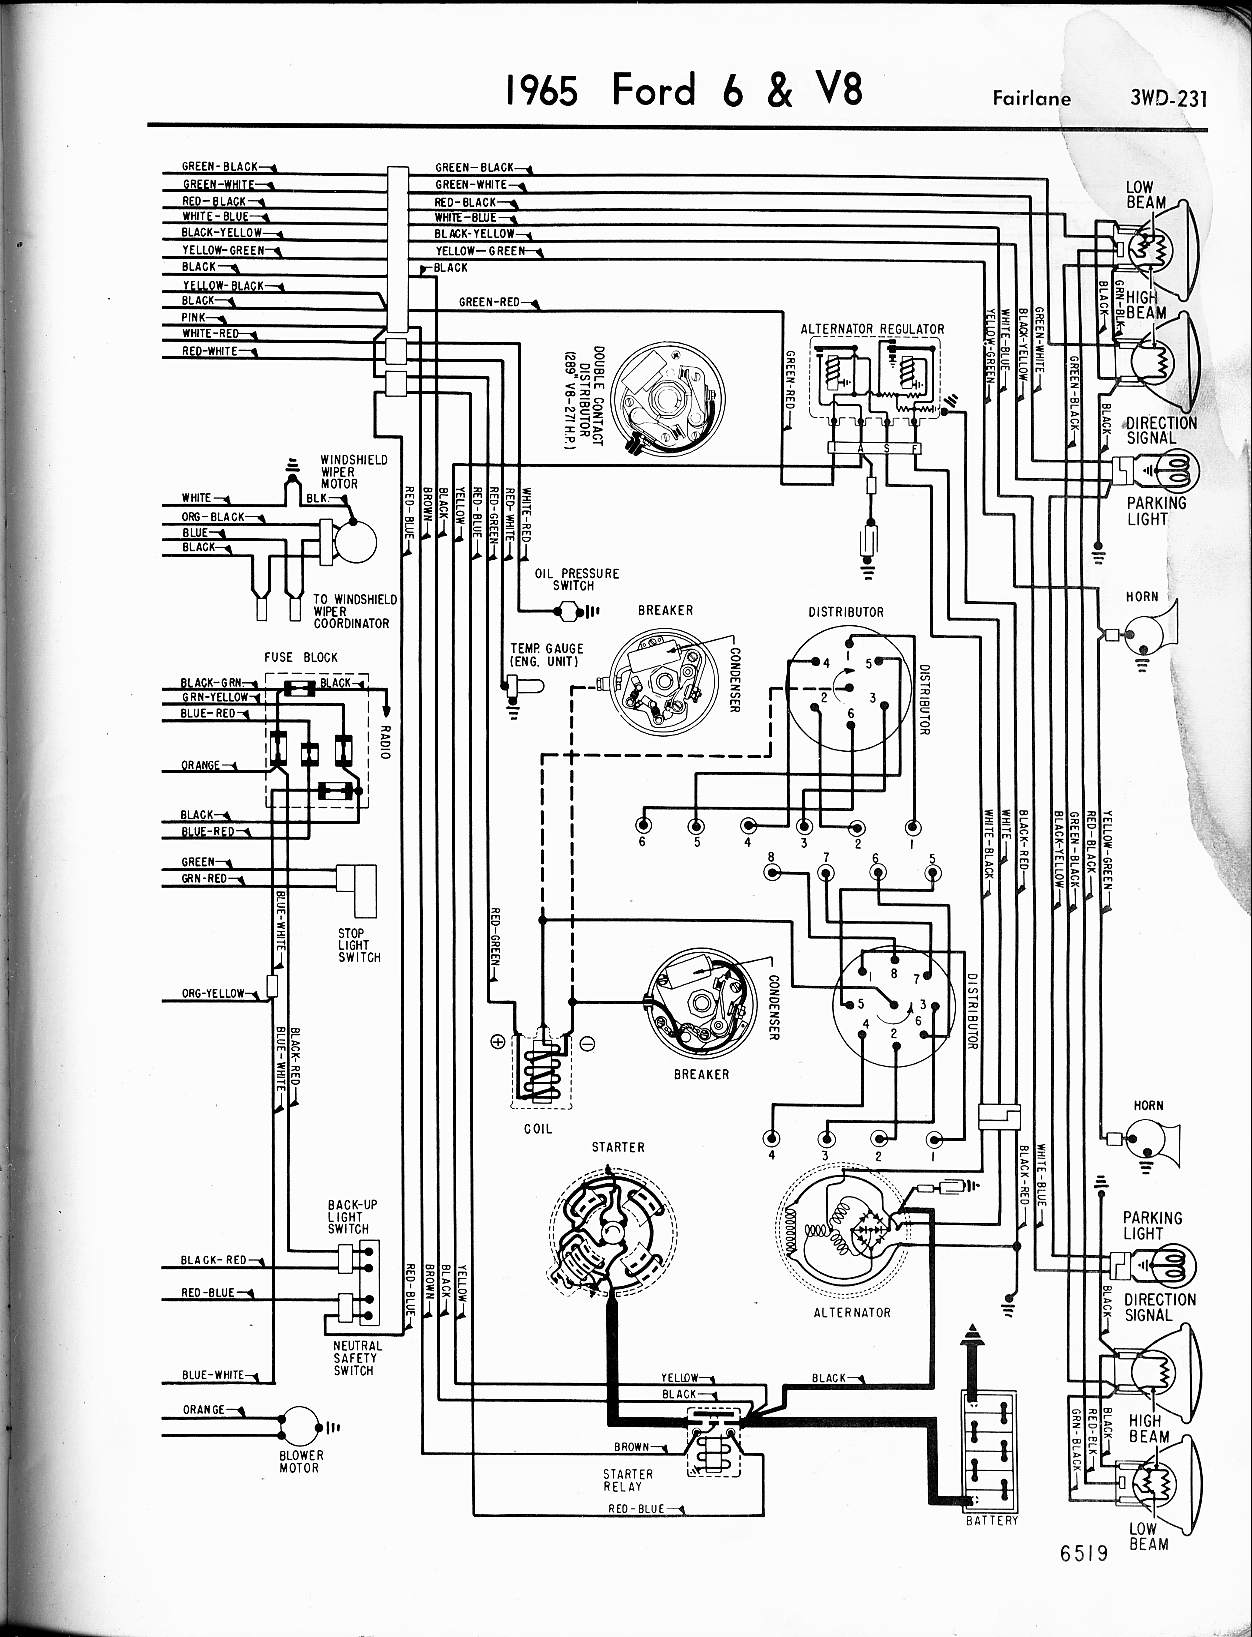 57 65 ford wiring diagrams 1965 6 v8 fairlane right